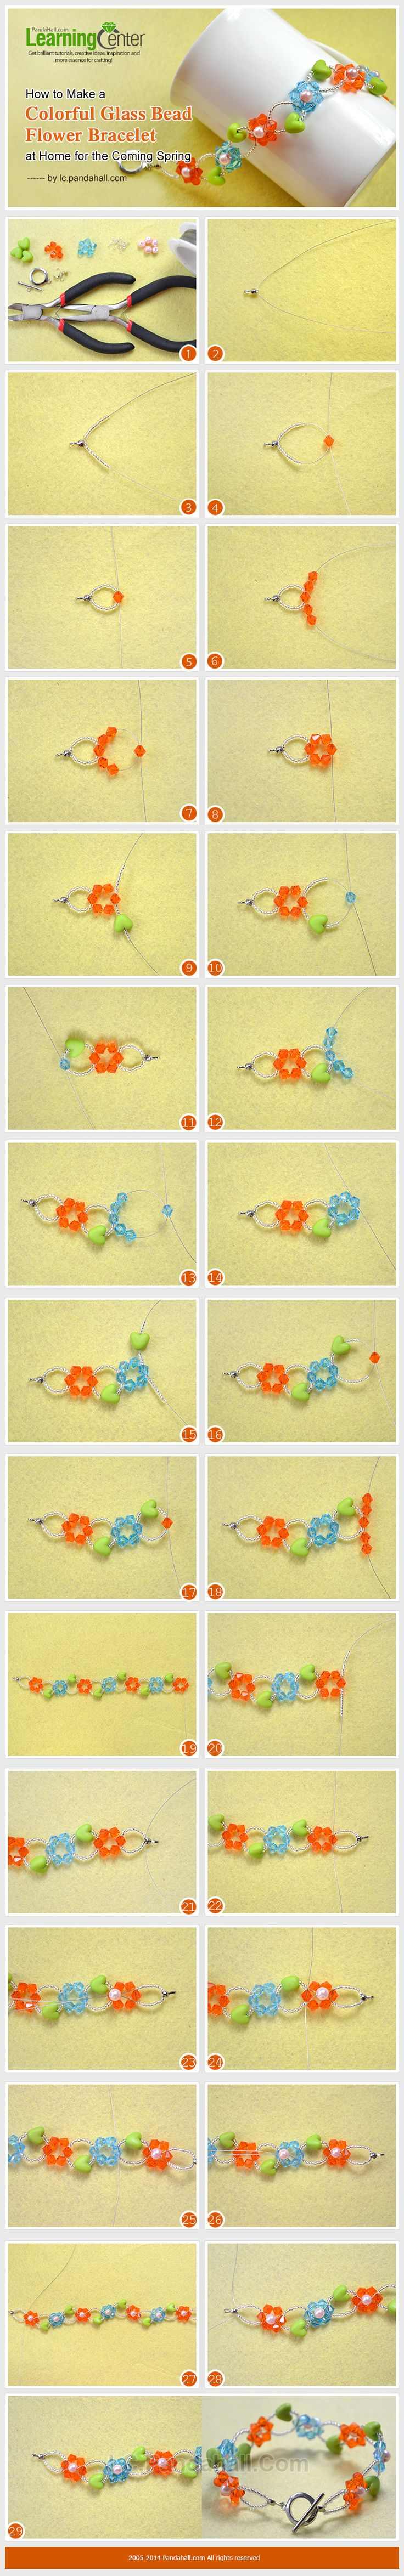 How to Make a Colorful Glass Bead Flower Bracelet at Home for the Coming Spring